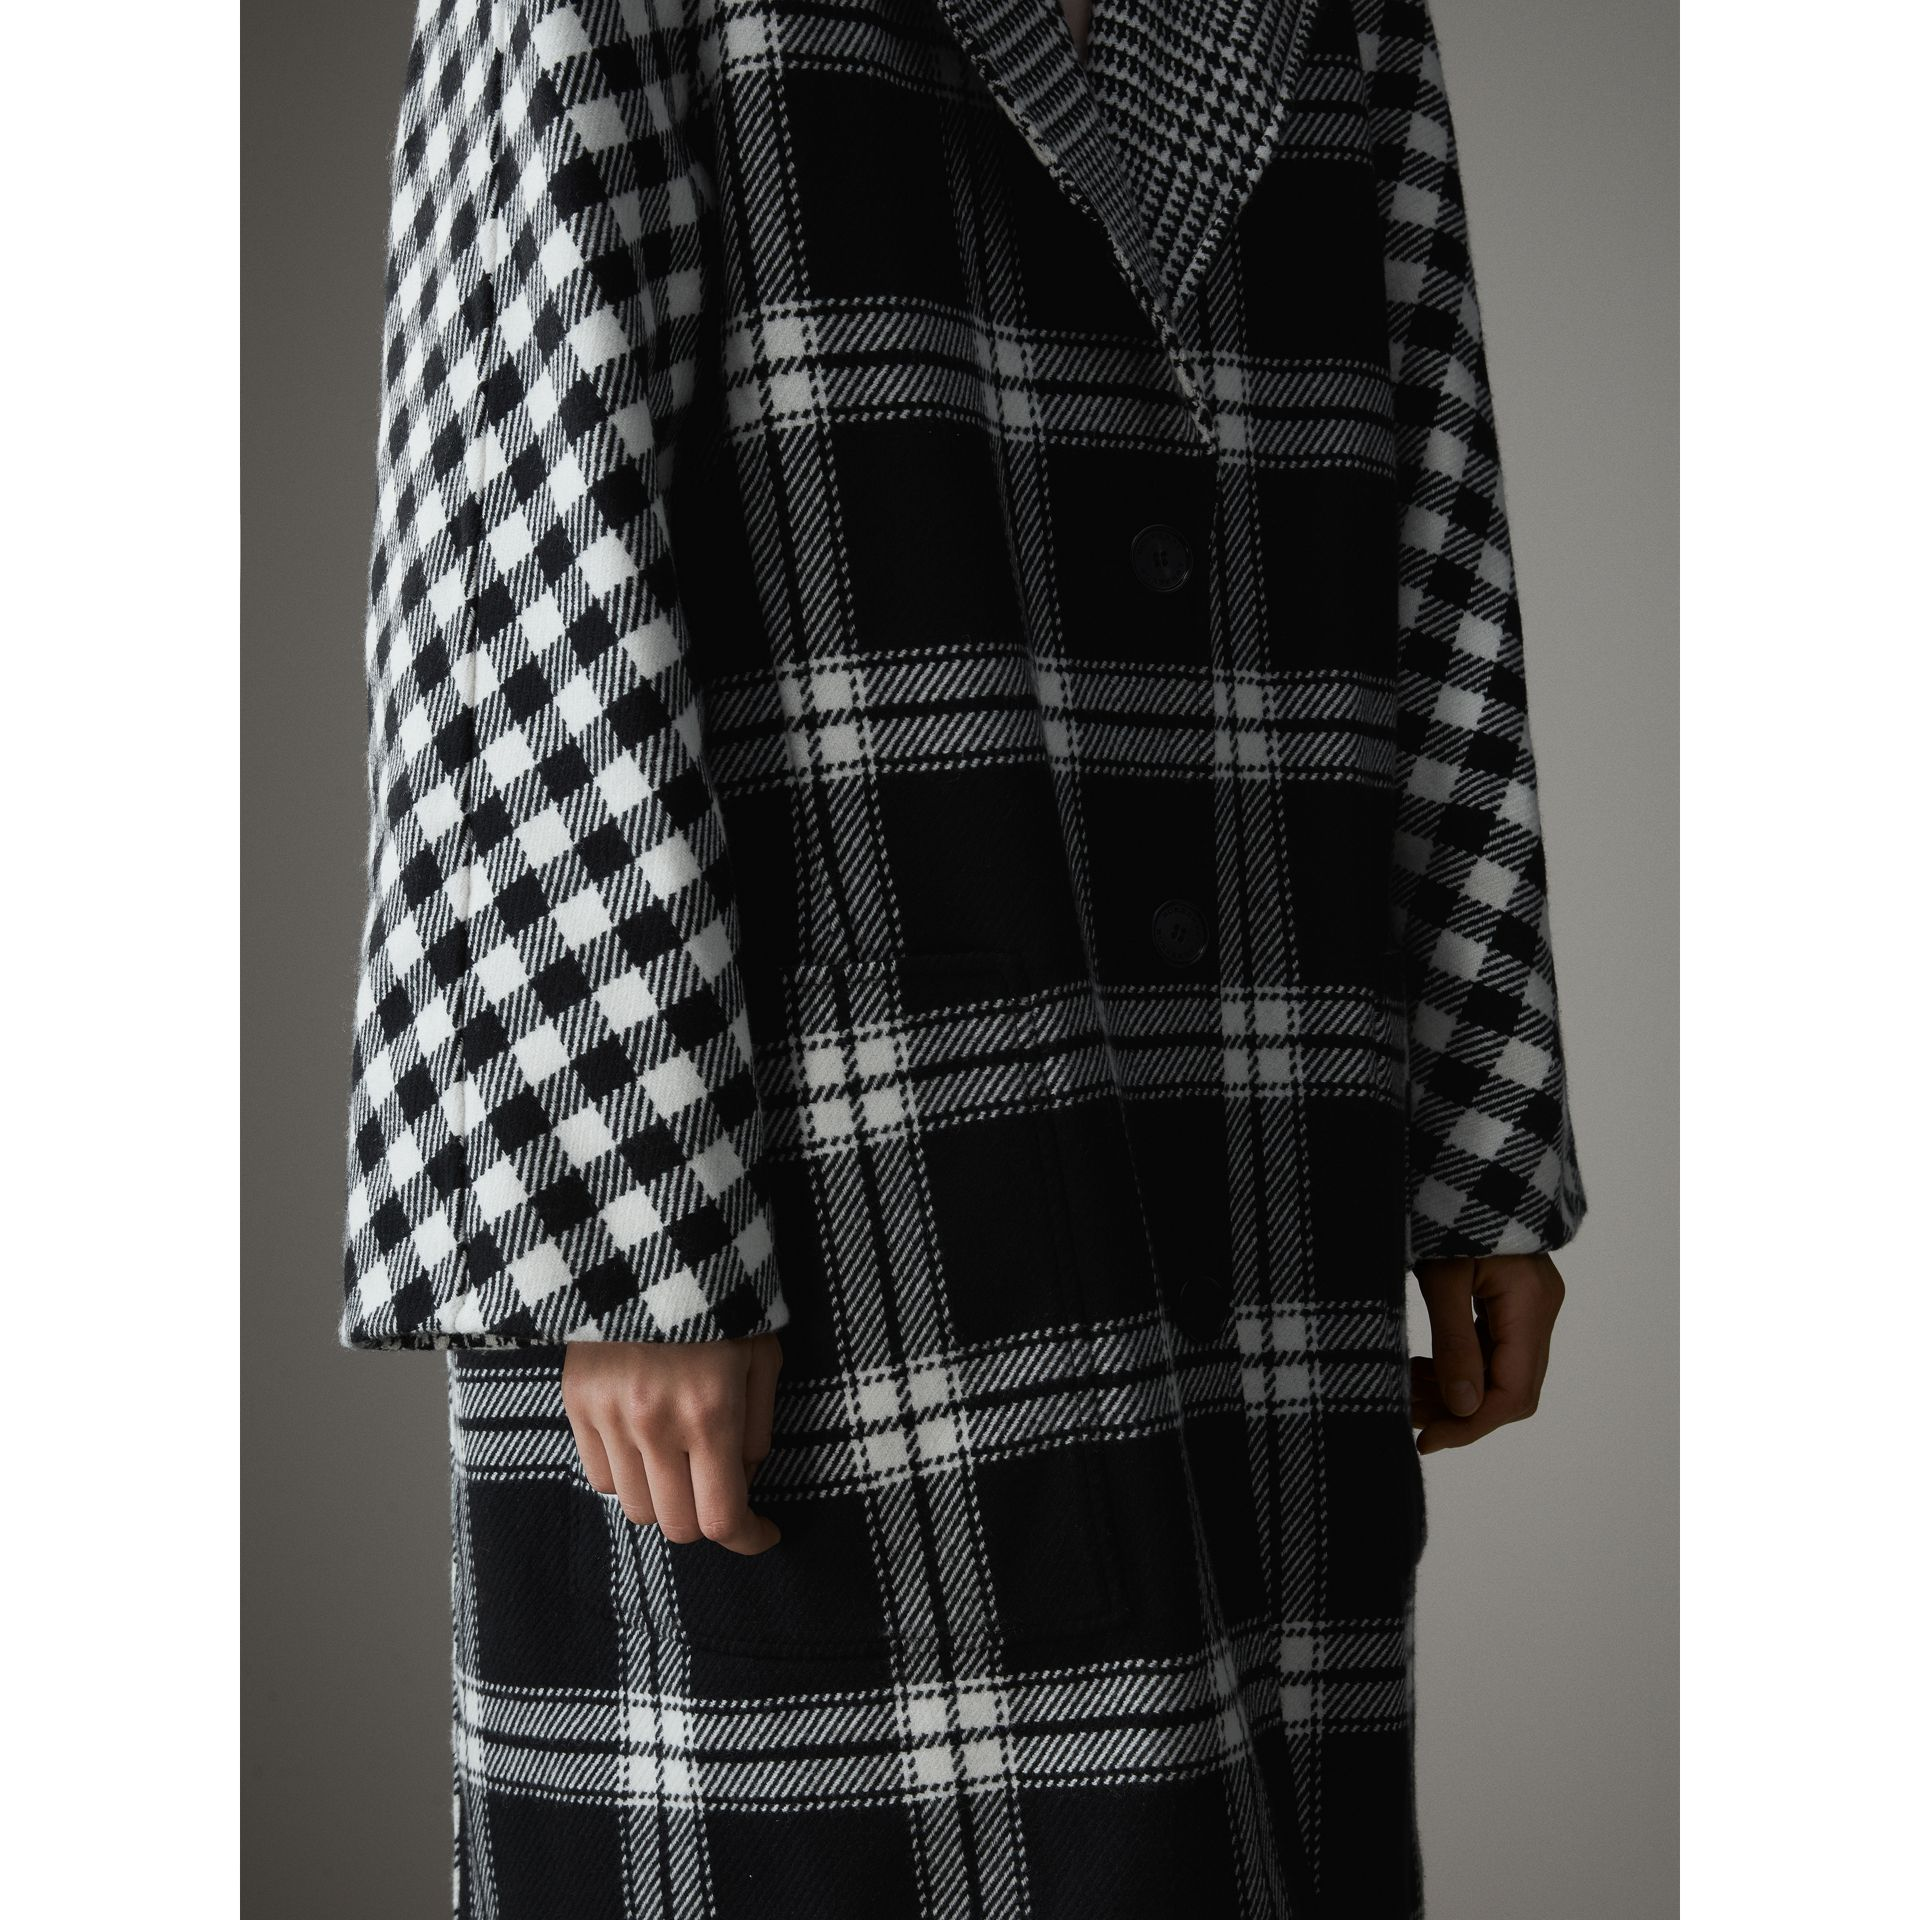 Reversible Multi-check Wool Cashmere Coat in Black/white - Women | Burberry Singapore - gallery image 6